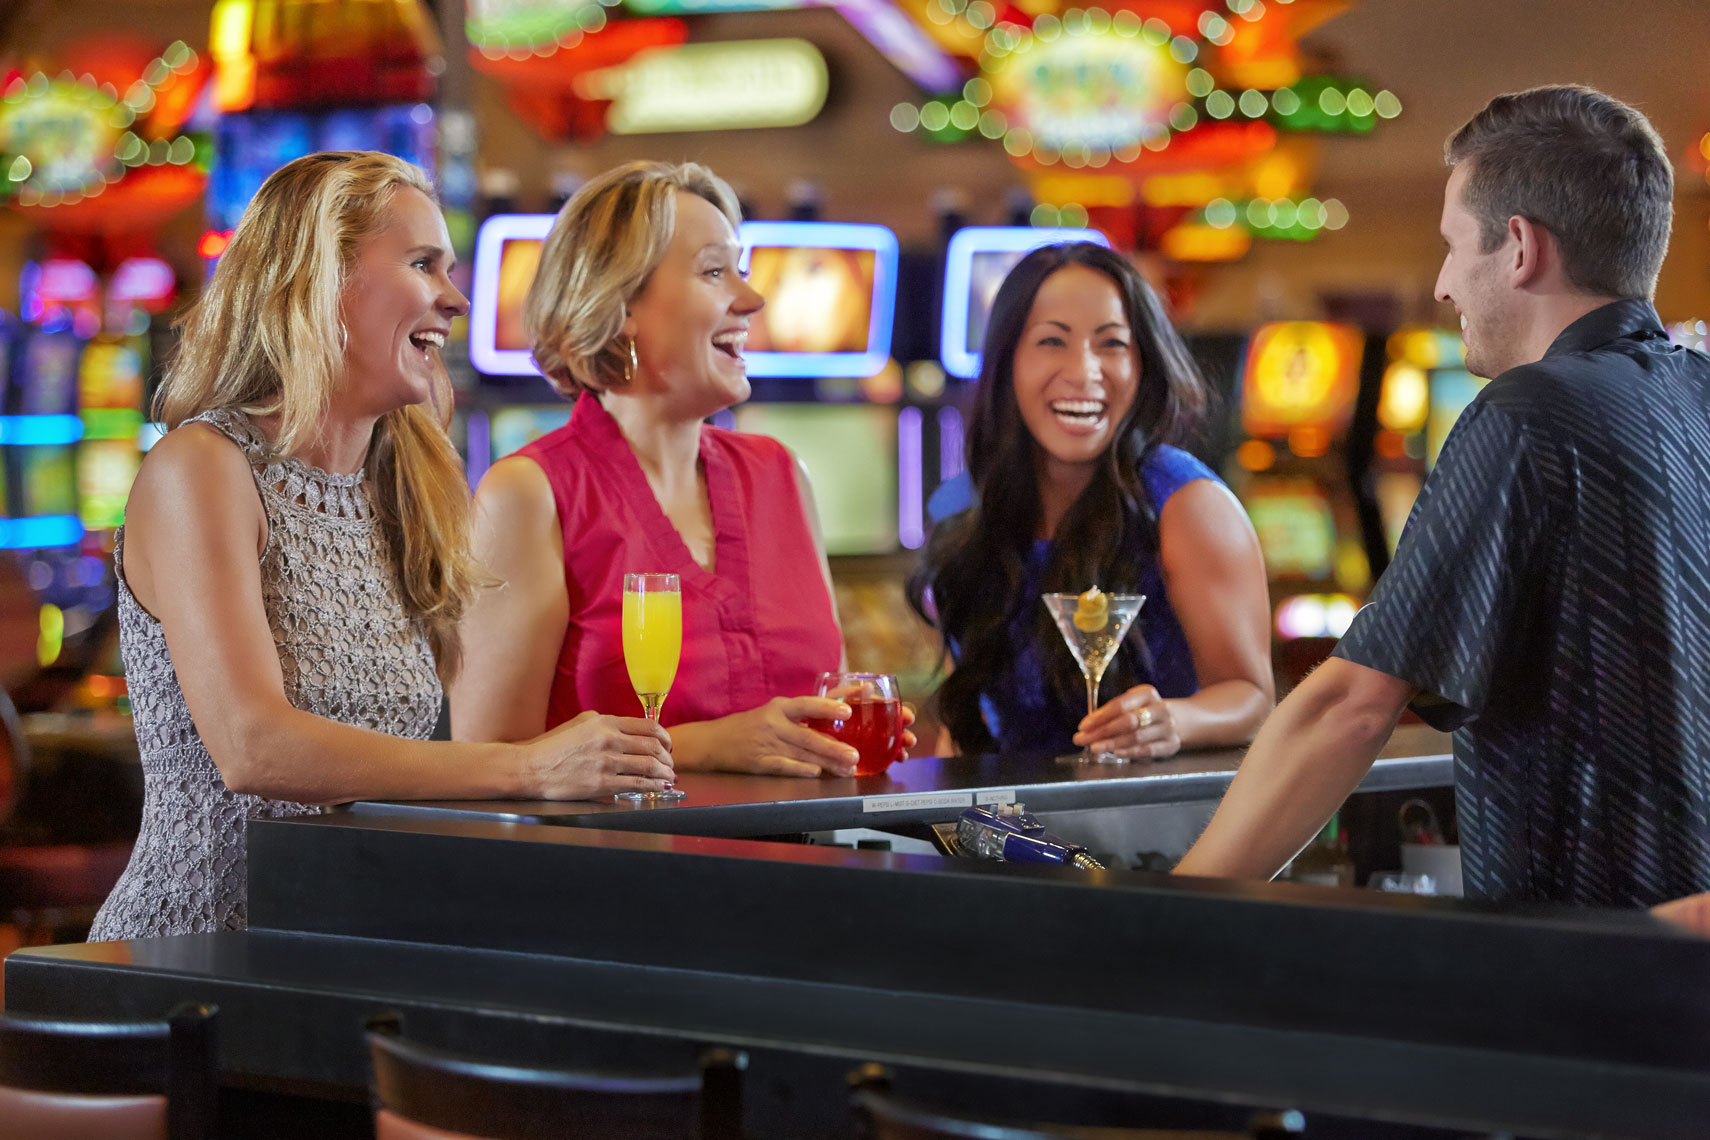 Little Six Casino/3 women at bar laughing/lifestyle people photography